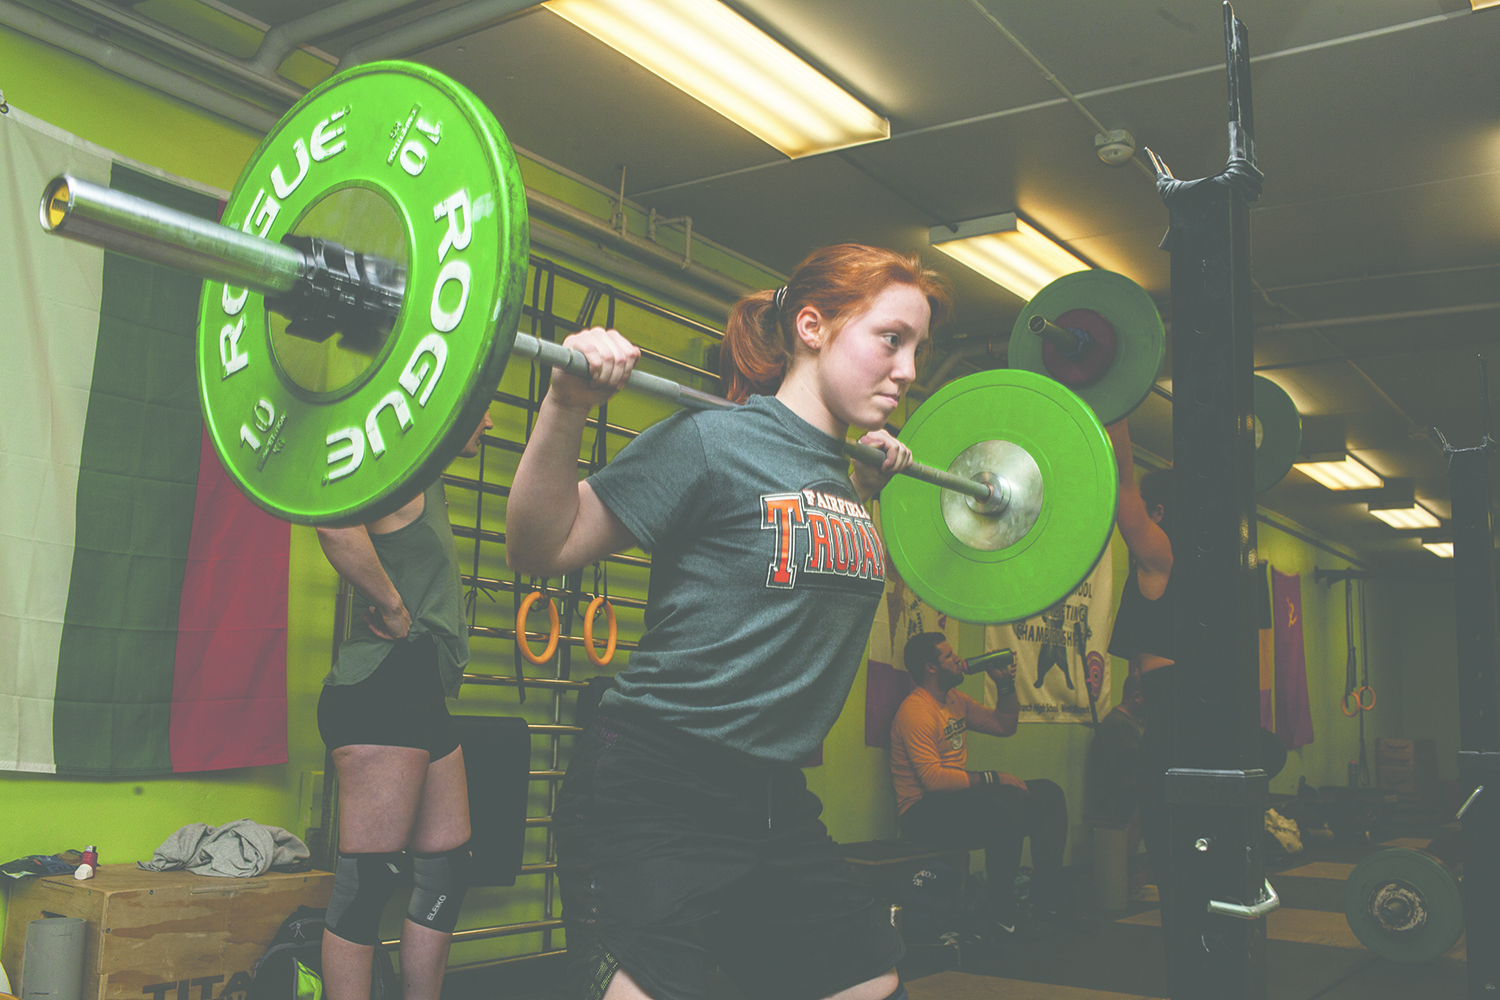 A club member squats during a practice session for Got Strength powerlifting club at the Robert A. Lee Recreation Center in Iowa City on Thursday, February 28, 2019. Got Strength was started by Coach Phil Johnson in 2005 and was held in his privately owned gym. The club moved in 2017 when it began working with the Iowa City Parks and Recreation Department. (Wyatt Dlouhy/The Daily Iowan)